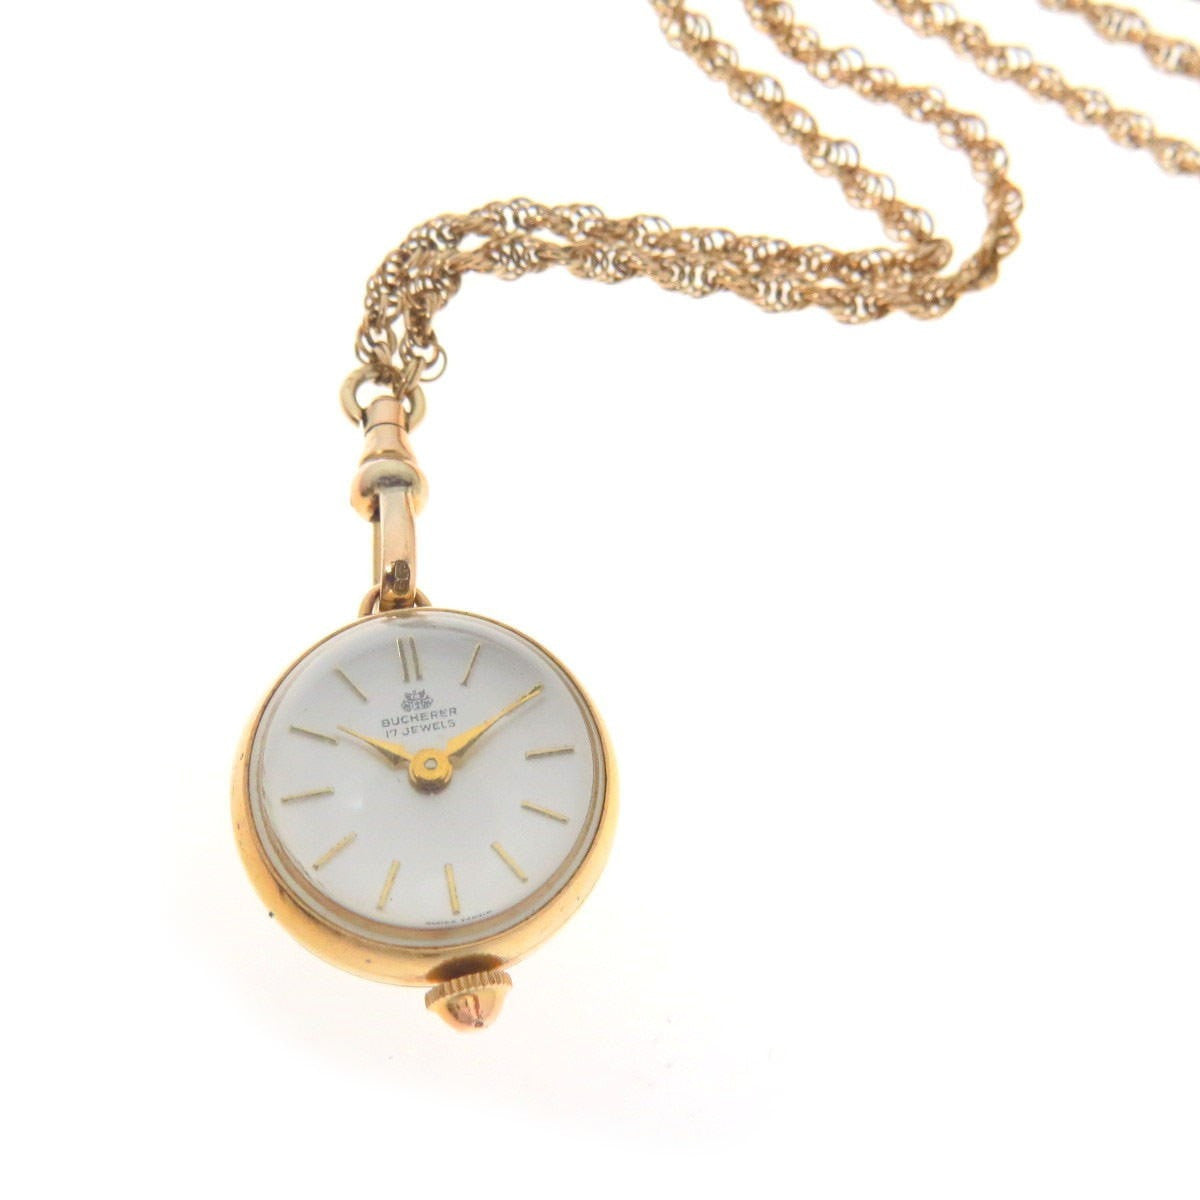 watch pendant claire owl necklace gold locket s